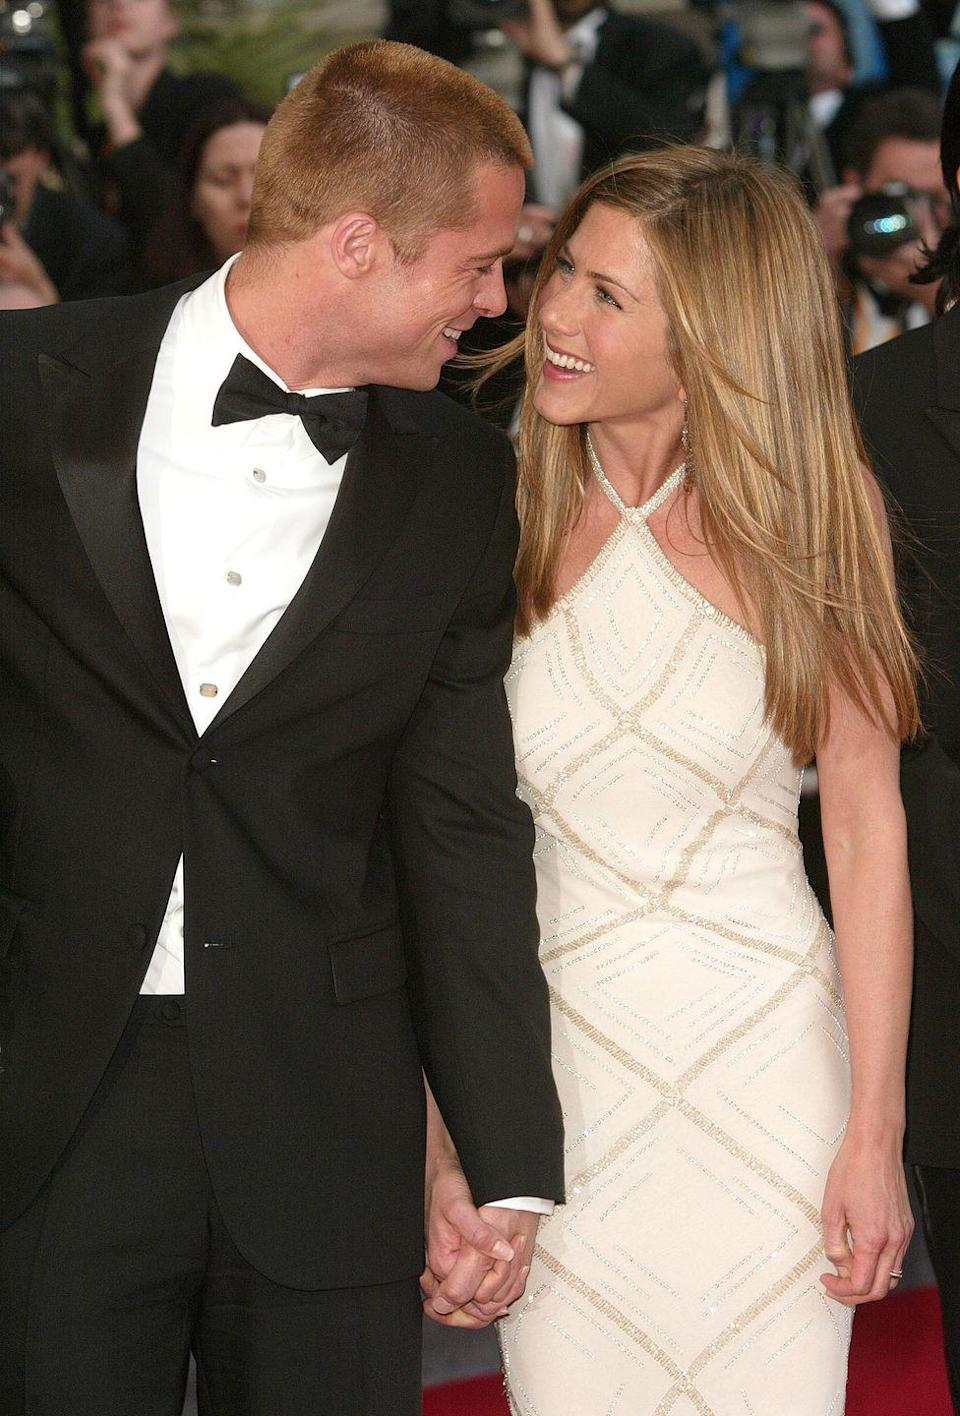 "<p>Everyone is desperate to set Aniston up, it seems. In <a href=""http://www.nydailynews.com/entertainment/marriage-brad-pitt-jennifer-aniston-gallery-1.2306925?pmSlide=1.2306911"" rel=""nofollow noopener"" target=""_blank"" data-ylk=""slk:1998"" class=""link rapid-noclick-resp"">1998</a>, her and Pitt's agents set them up on a blind date that led to a seven-year relationship. </p>"